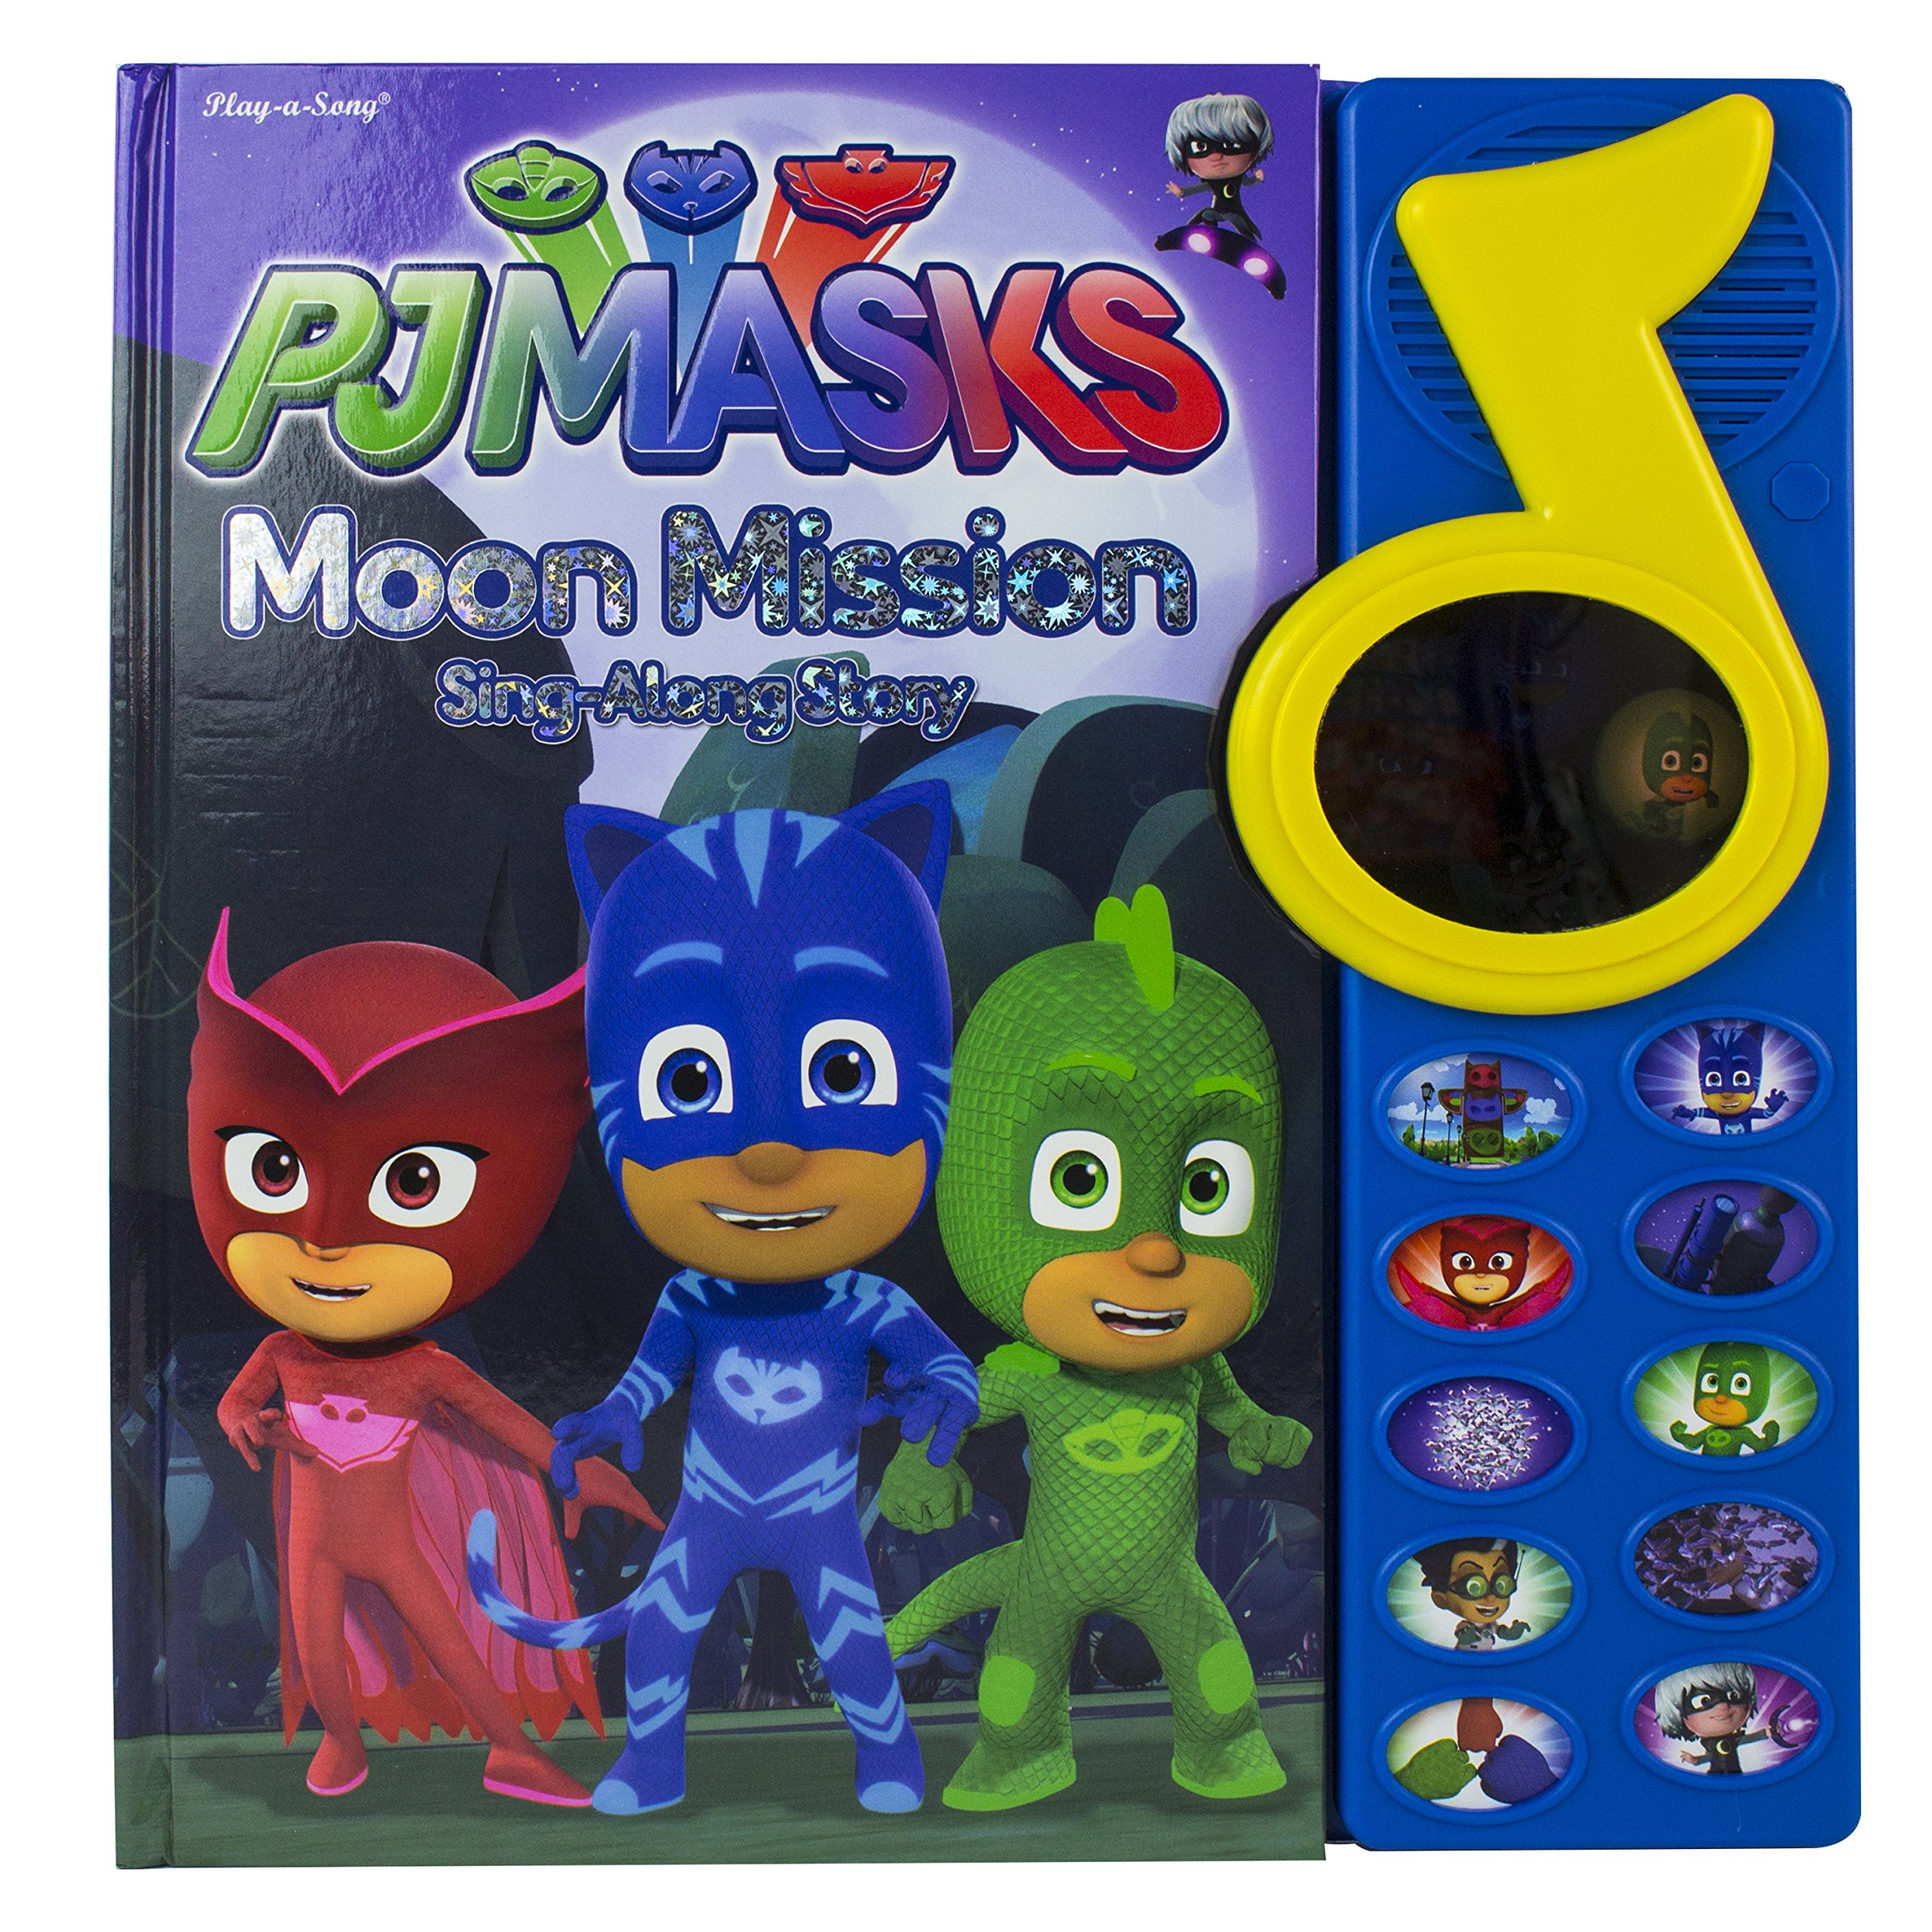 PJ Masks - Moon Mission Sing-Along Story Sound Book with Mirror - Play-a-Song - PI Kids PDF